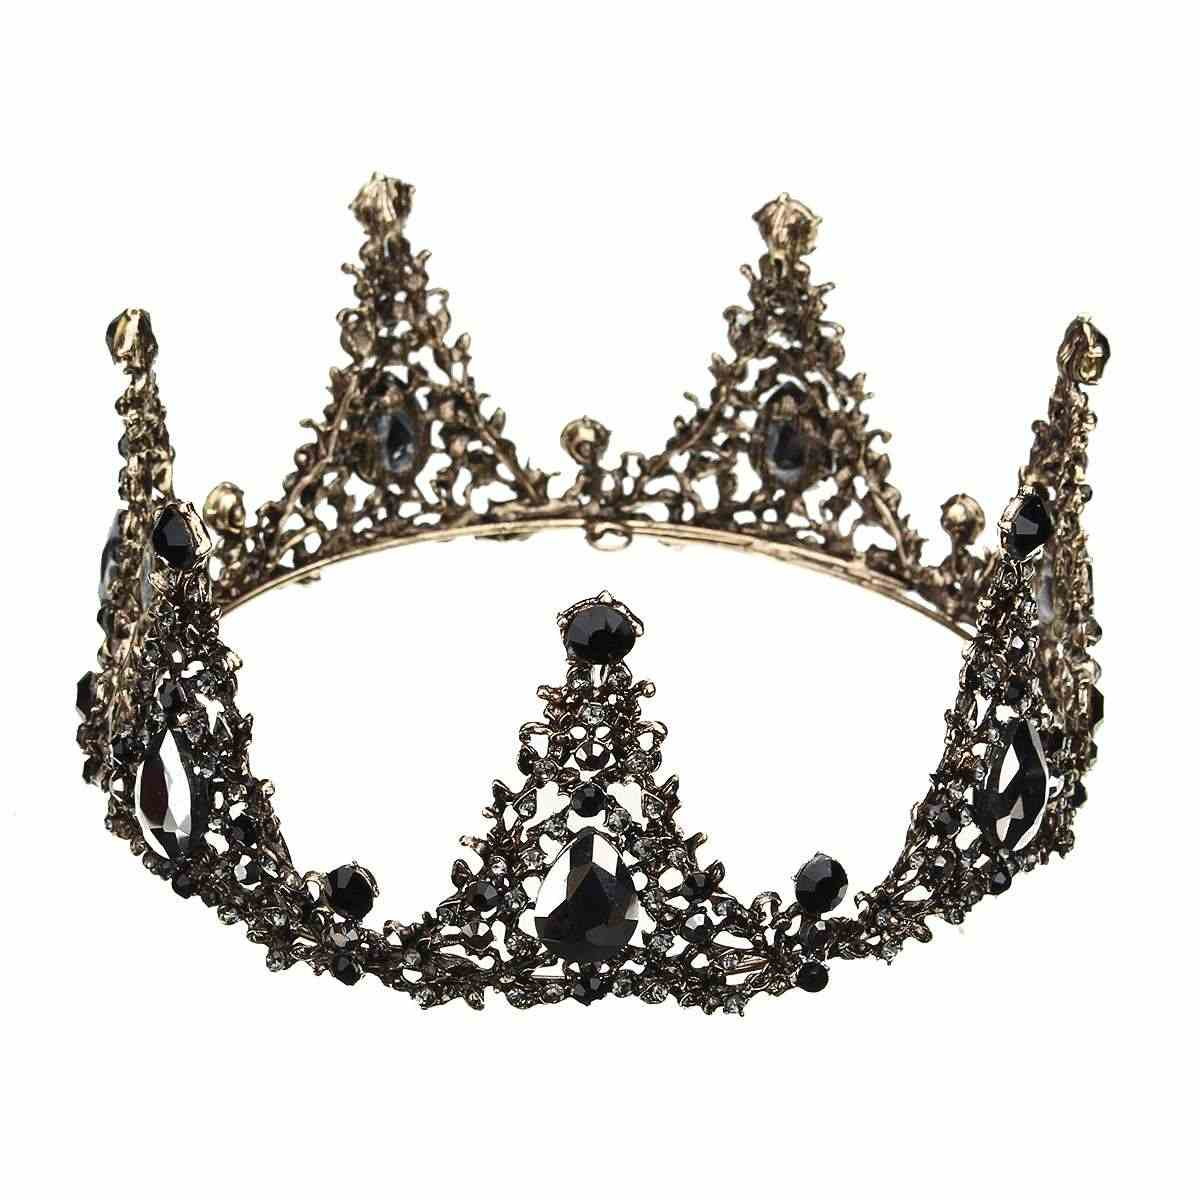 Baroque Full Round Tiara Black Rhinestone Crystal Crowns Vintage Queen  Pageant Bridal Wedding Hair Jewelry Accessories 82e0afd49ab6